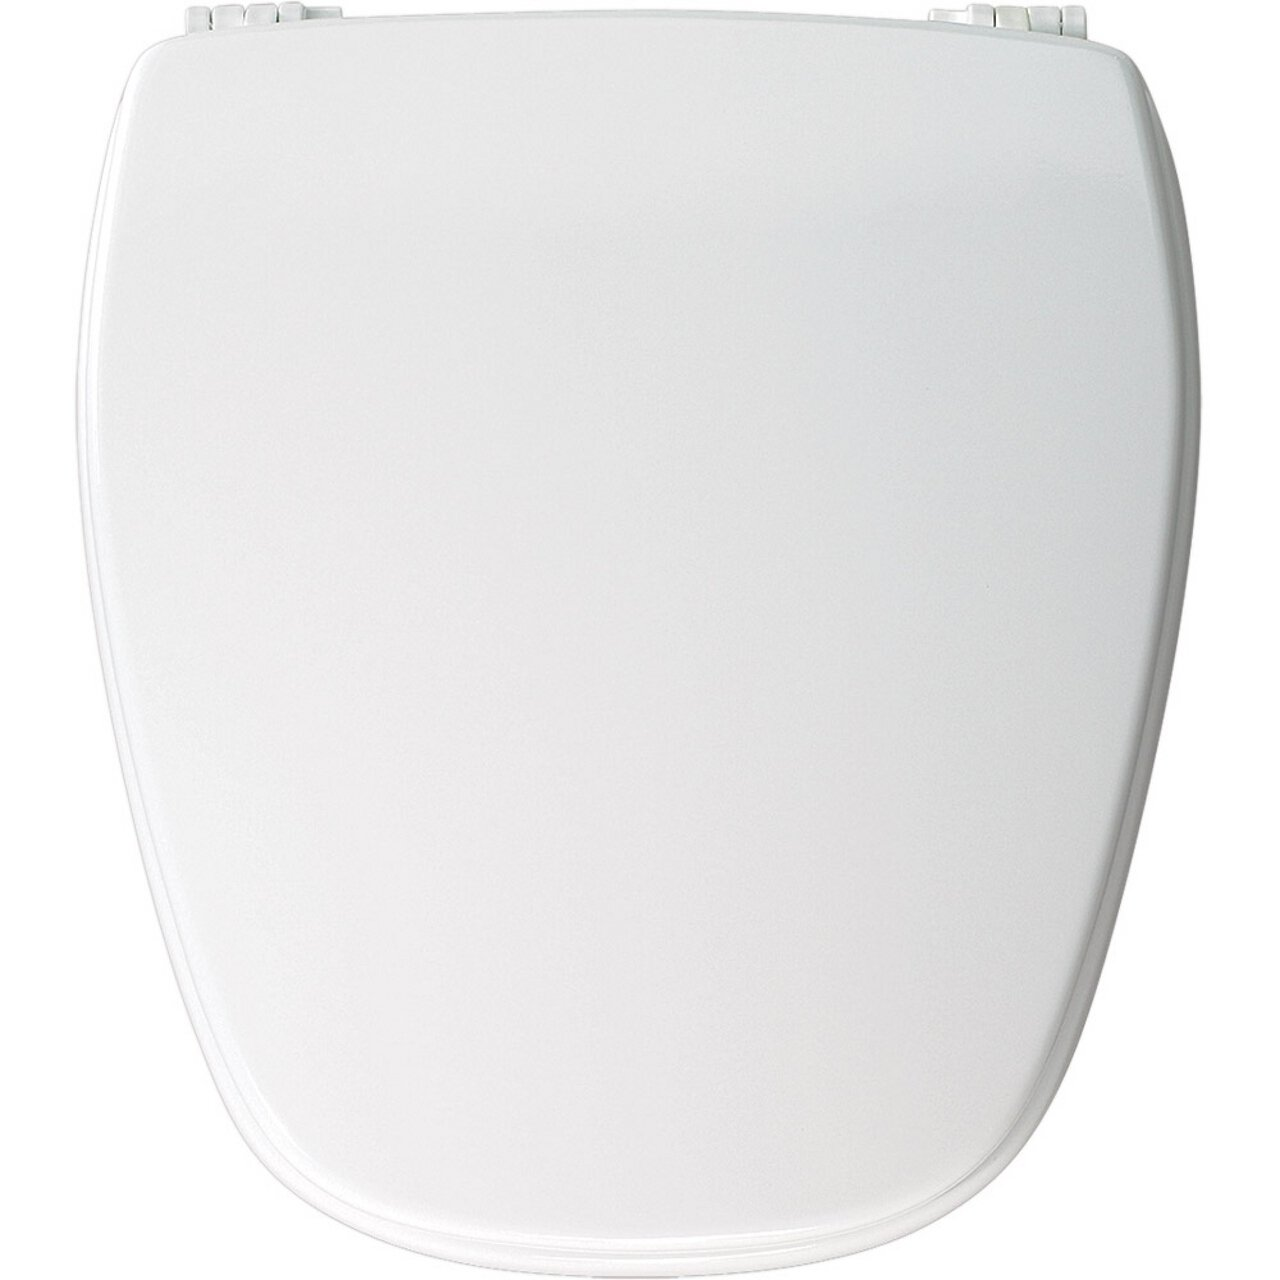 Bemis NW209E10000 Molded Wood Round Toilet Seat, White by Bemis